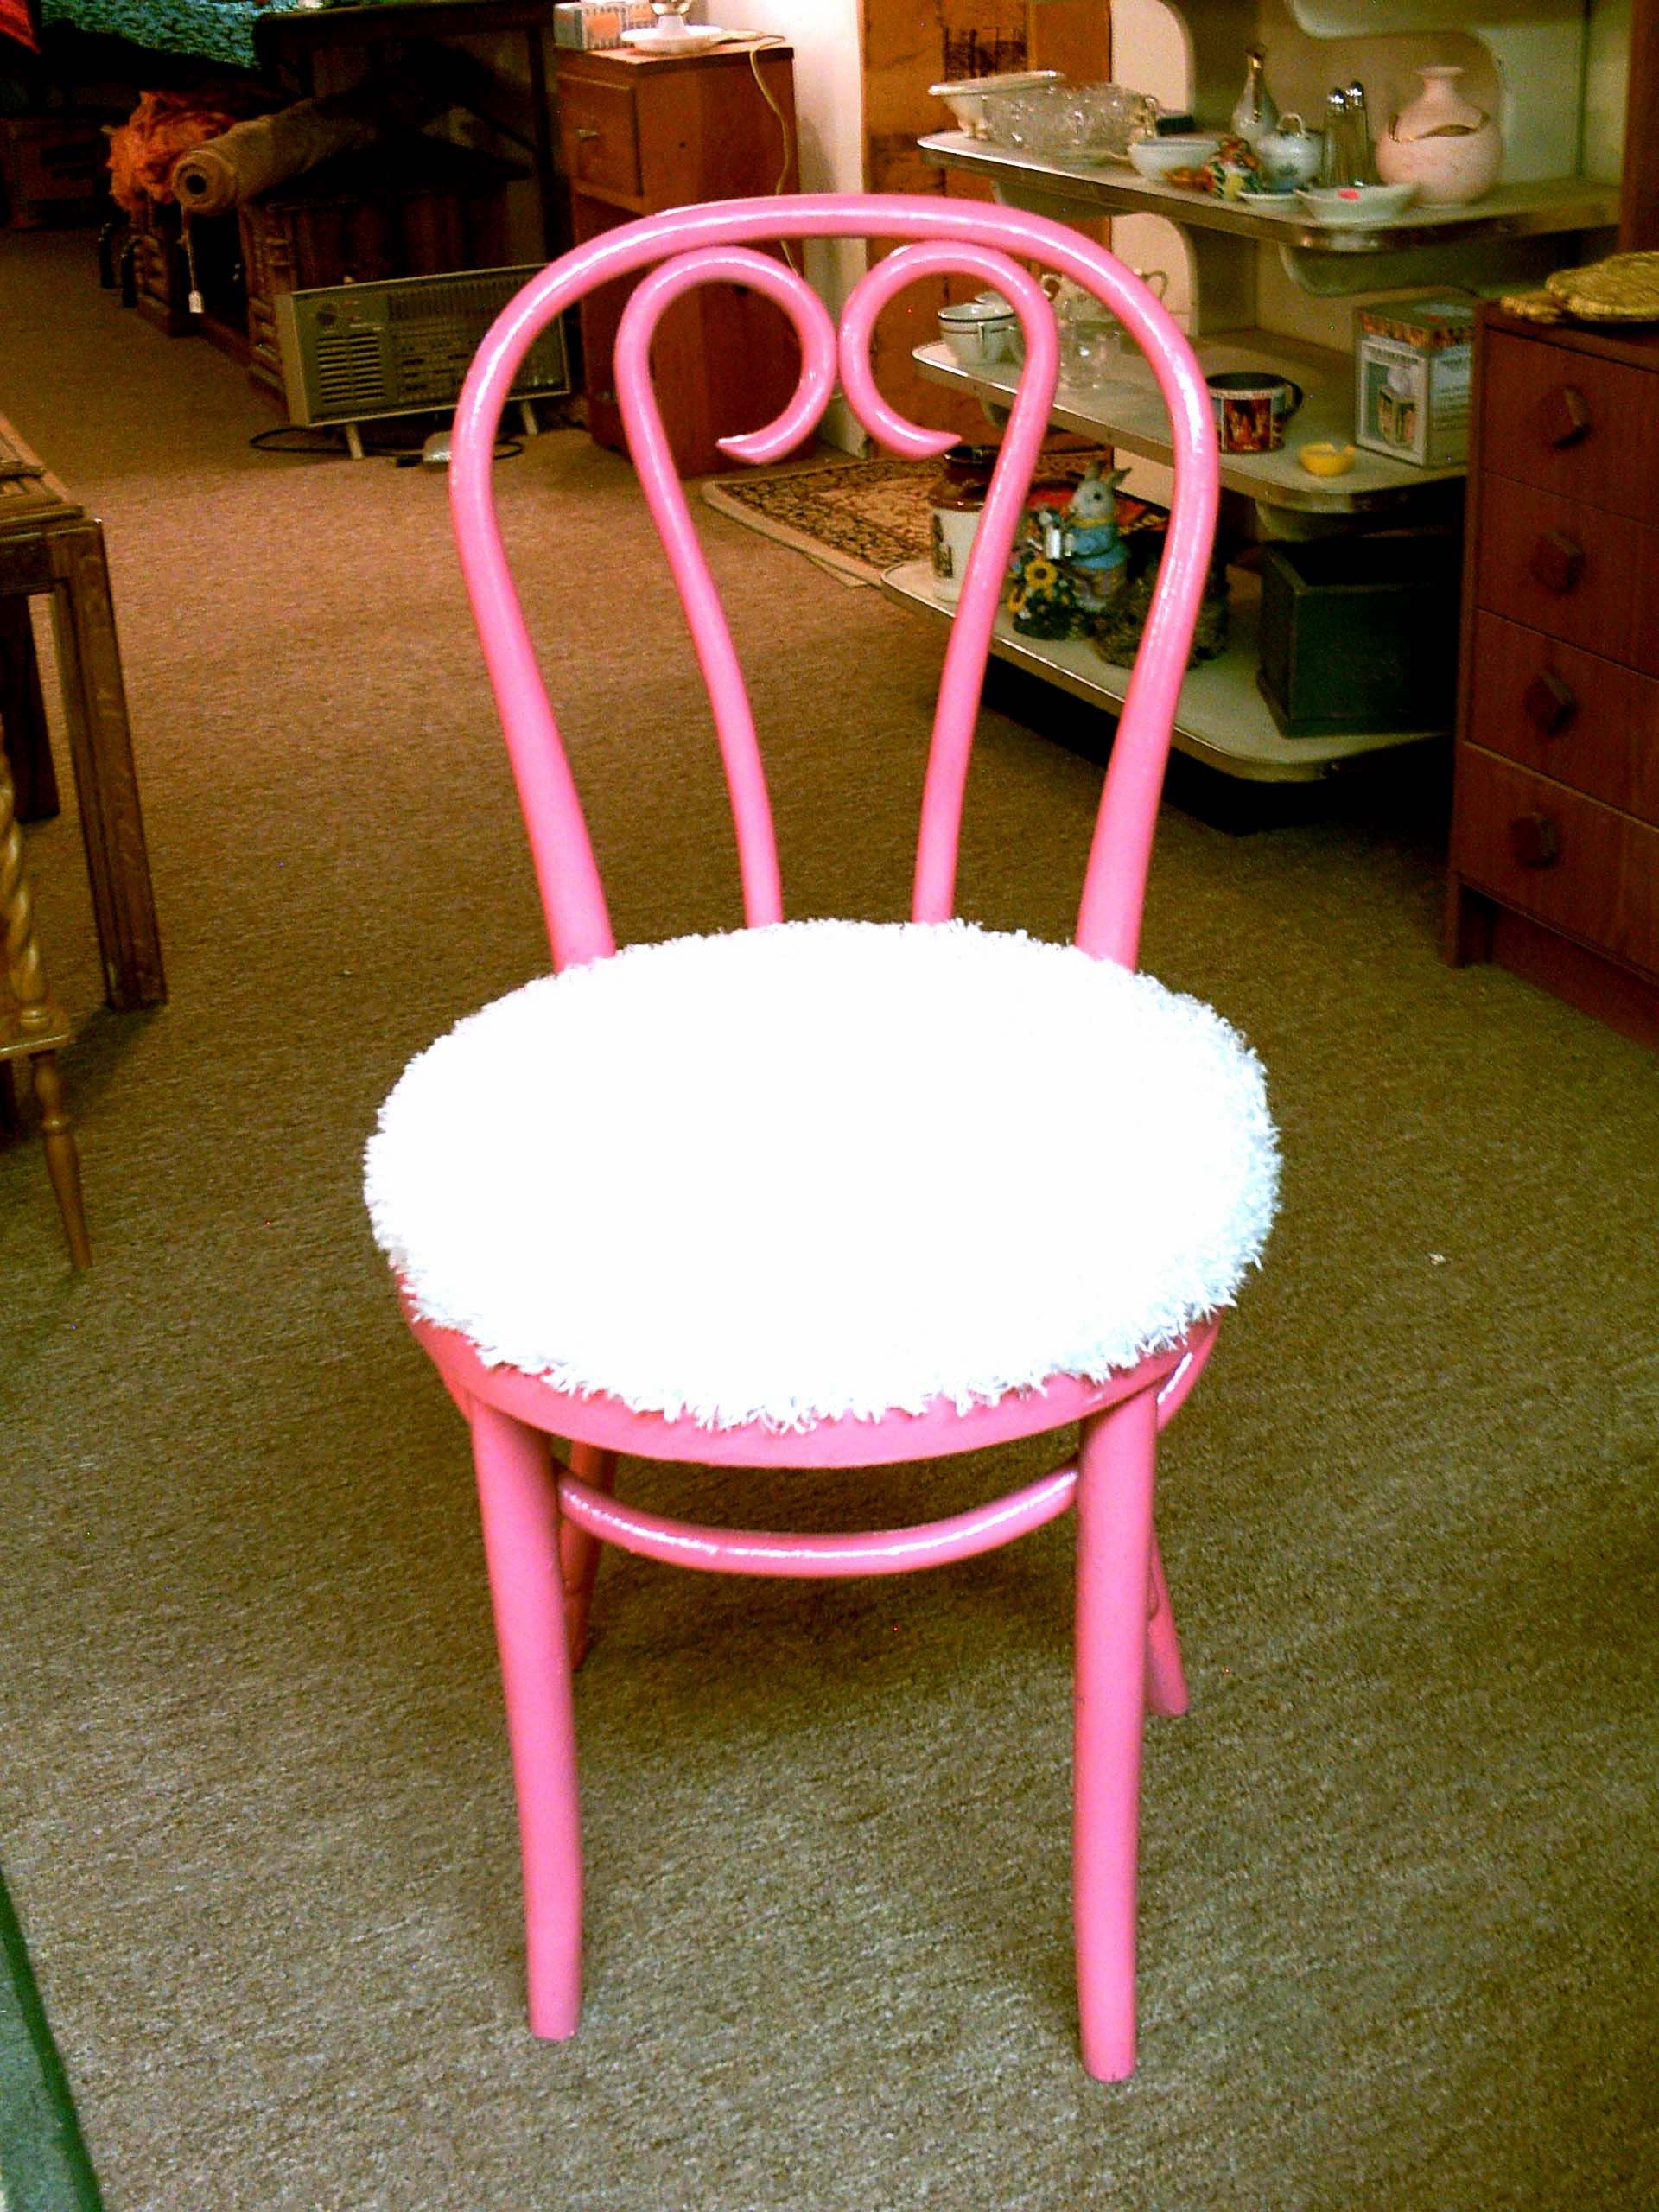 We Painted Up An Old Wood Parlor Chair And Added Padding And Some Cute Long  Knap White Material We Found.